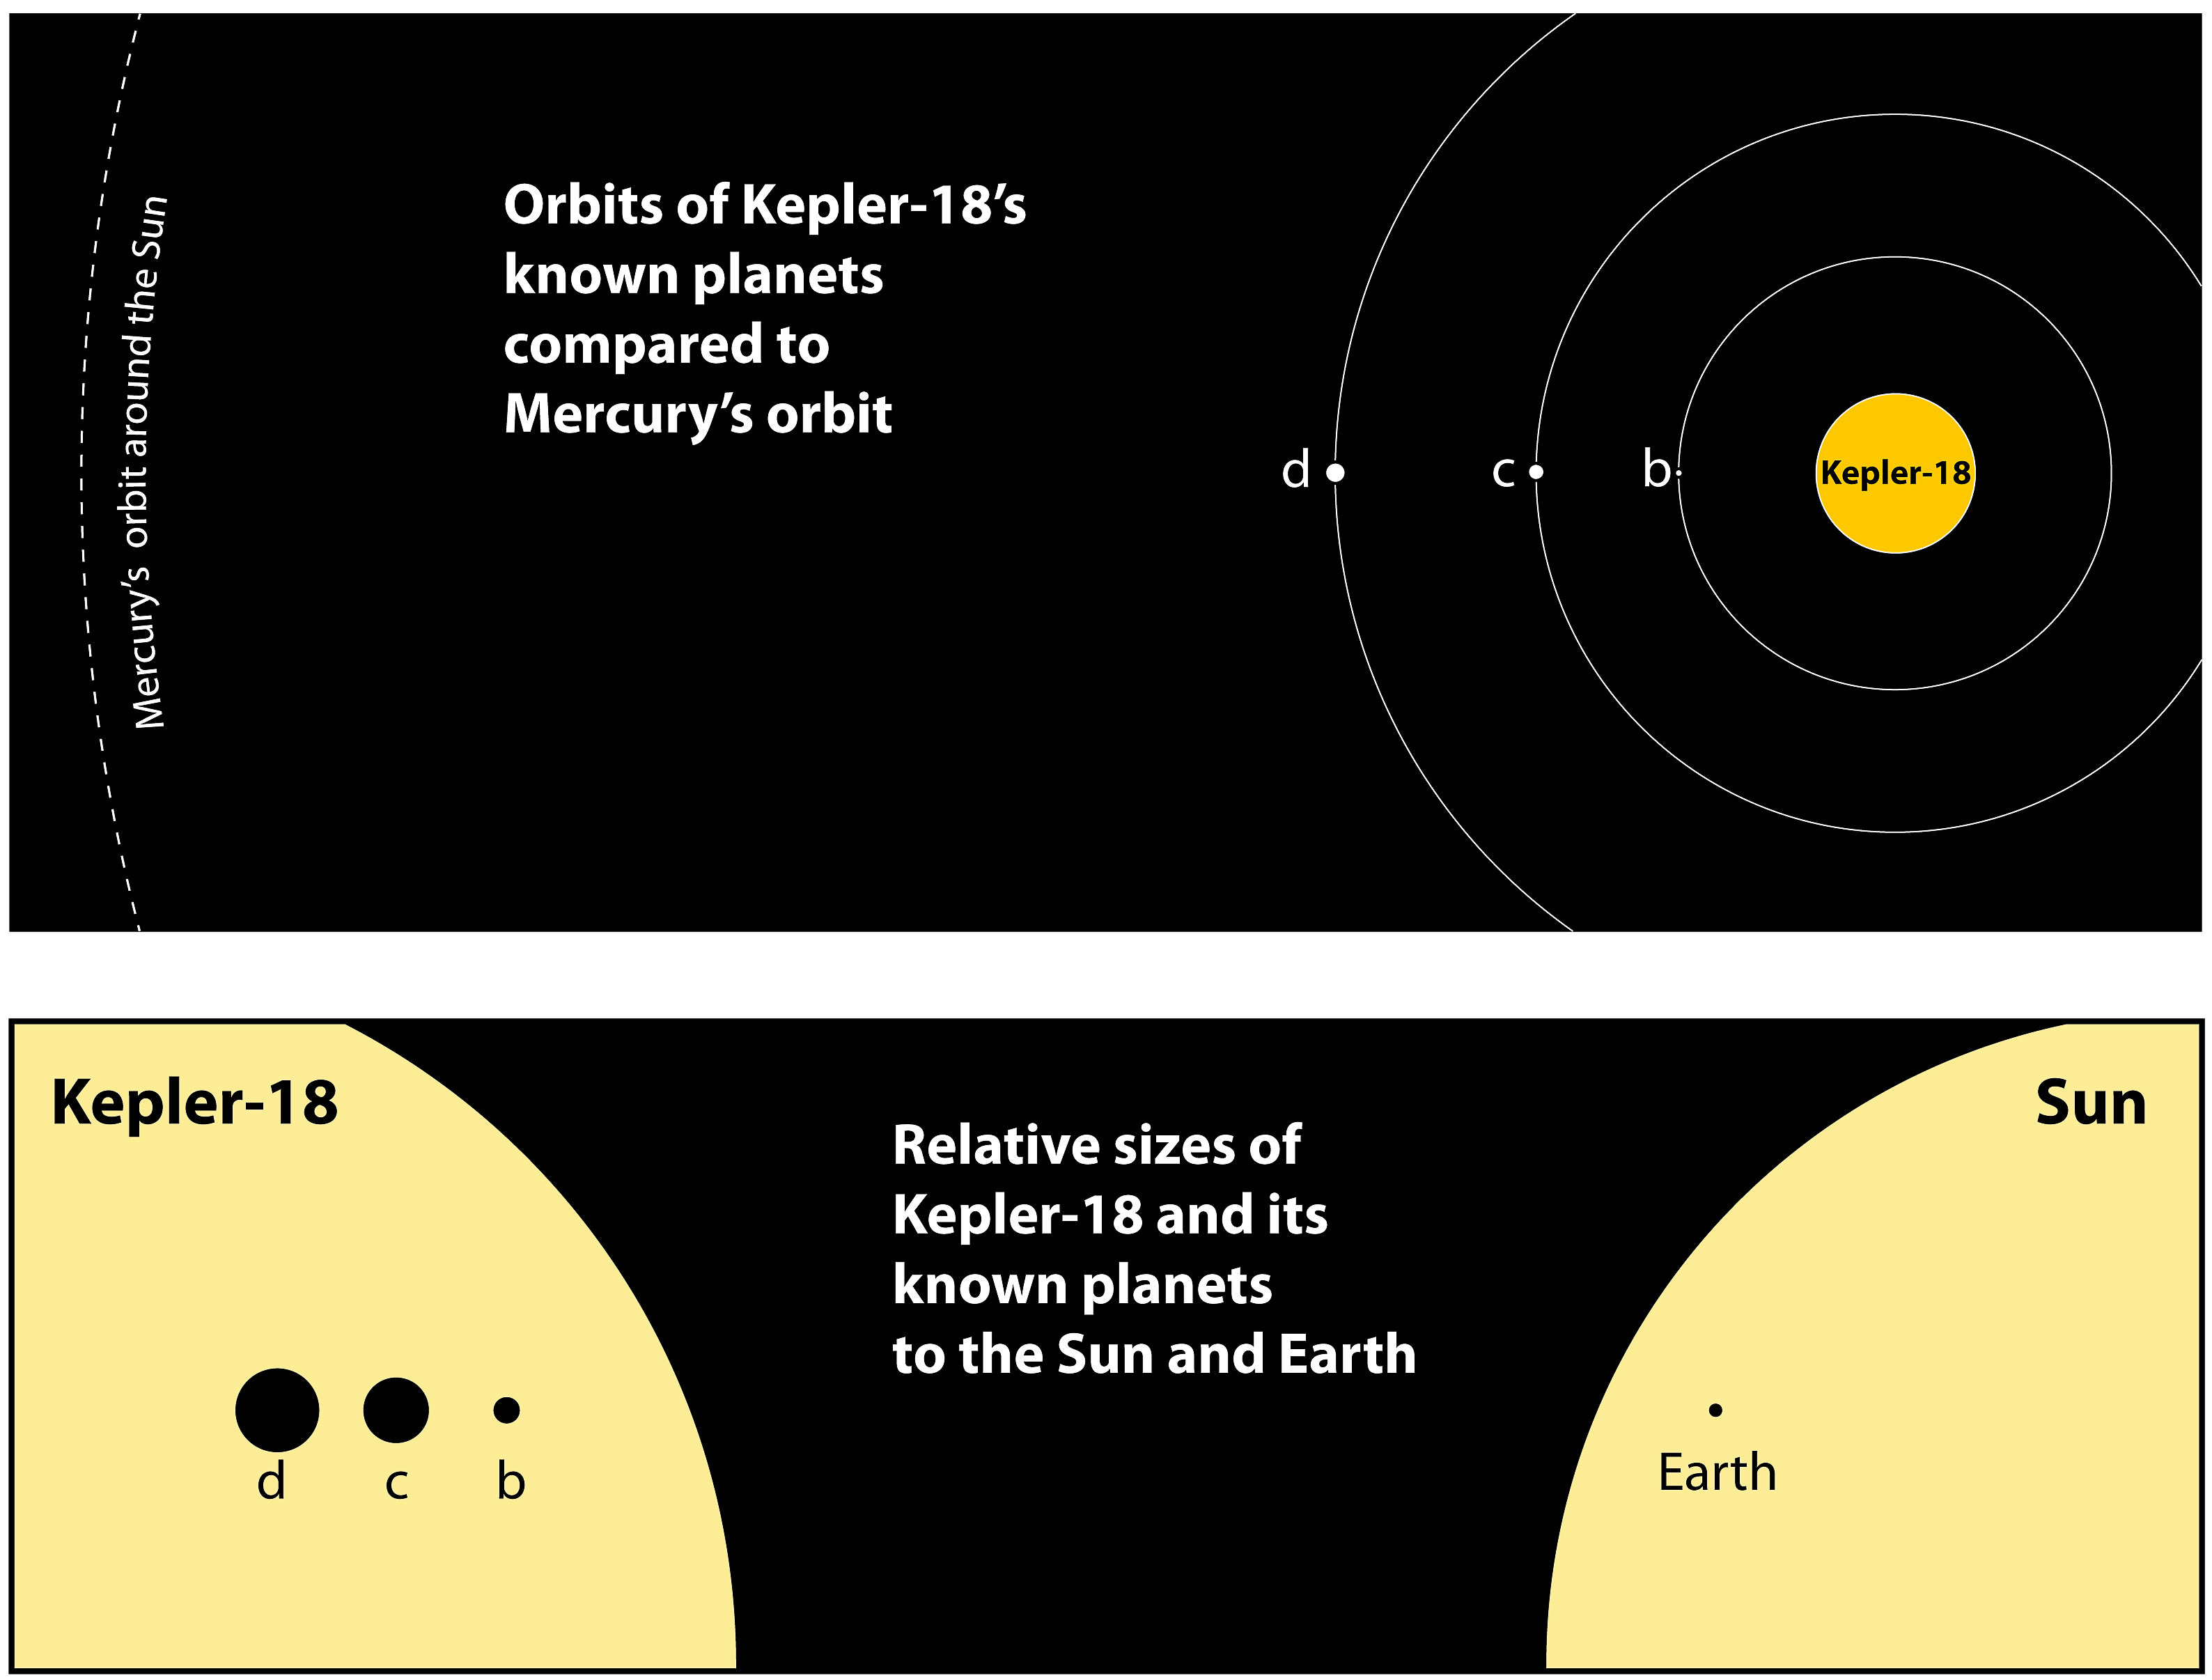 The top graphic shows the orbits of the three known planets orbiting Kepler-18 as compared to Mercury's orbit around the Sun. The bottom graphic shows the relative sizes of the Kepler-18 and its known planets to the Sun and Earth.  Credit: Tim Jones/McDonald Obs./UT-Austin